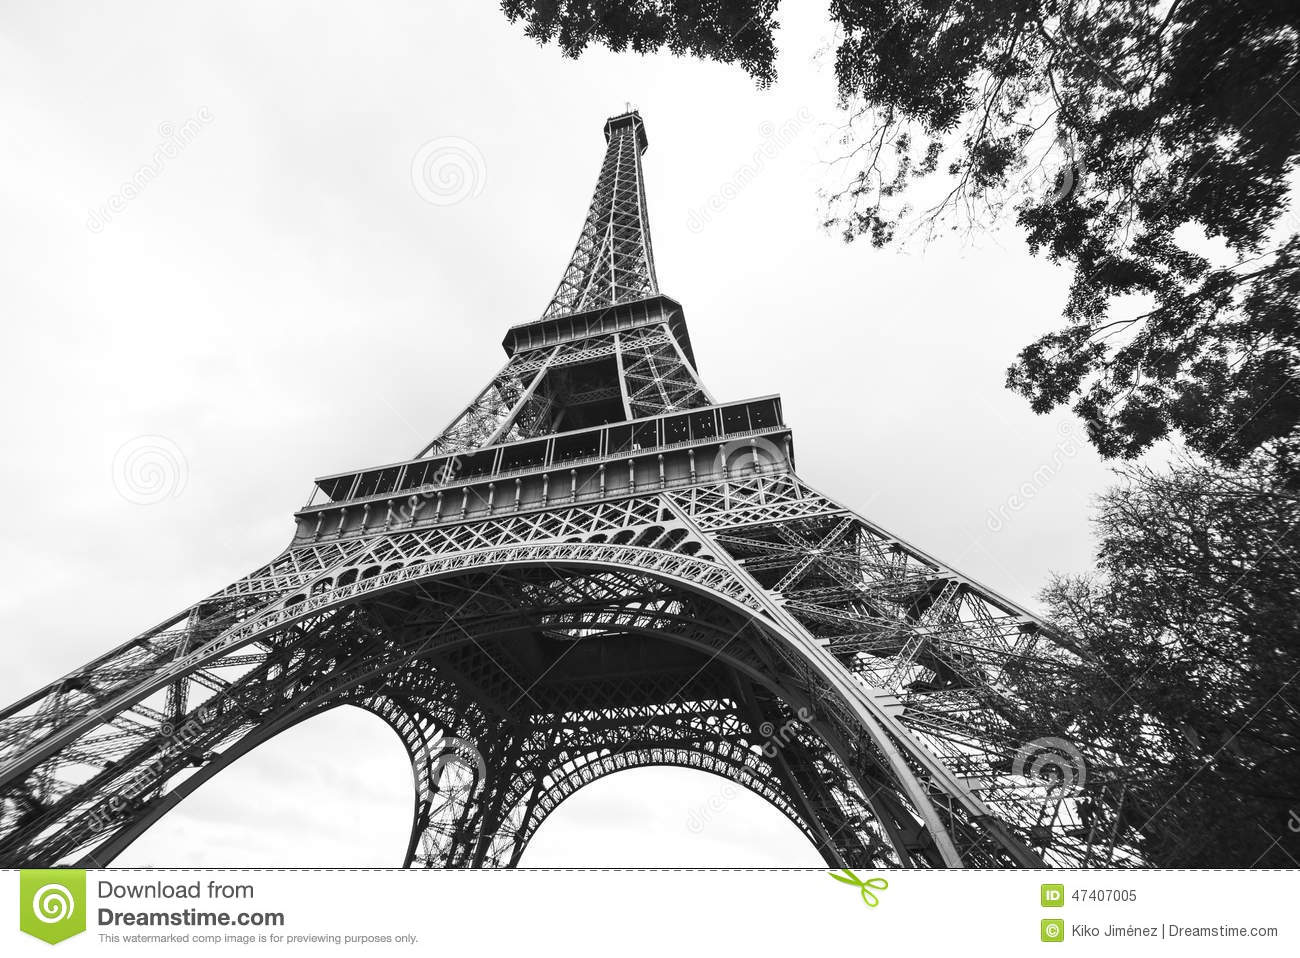 Eiffel Tower Images Black And White: The Eiffel Tower In Black And White